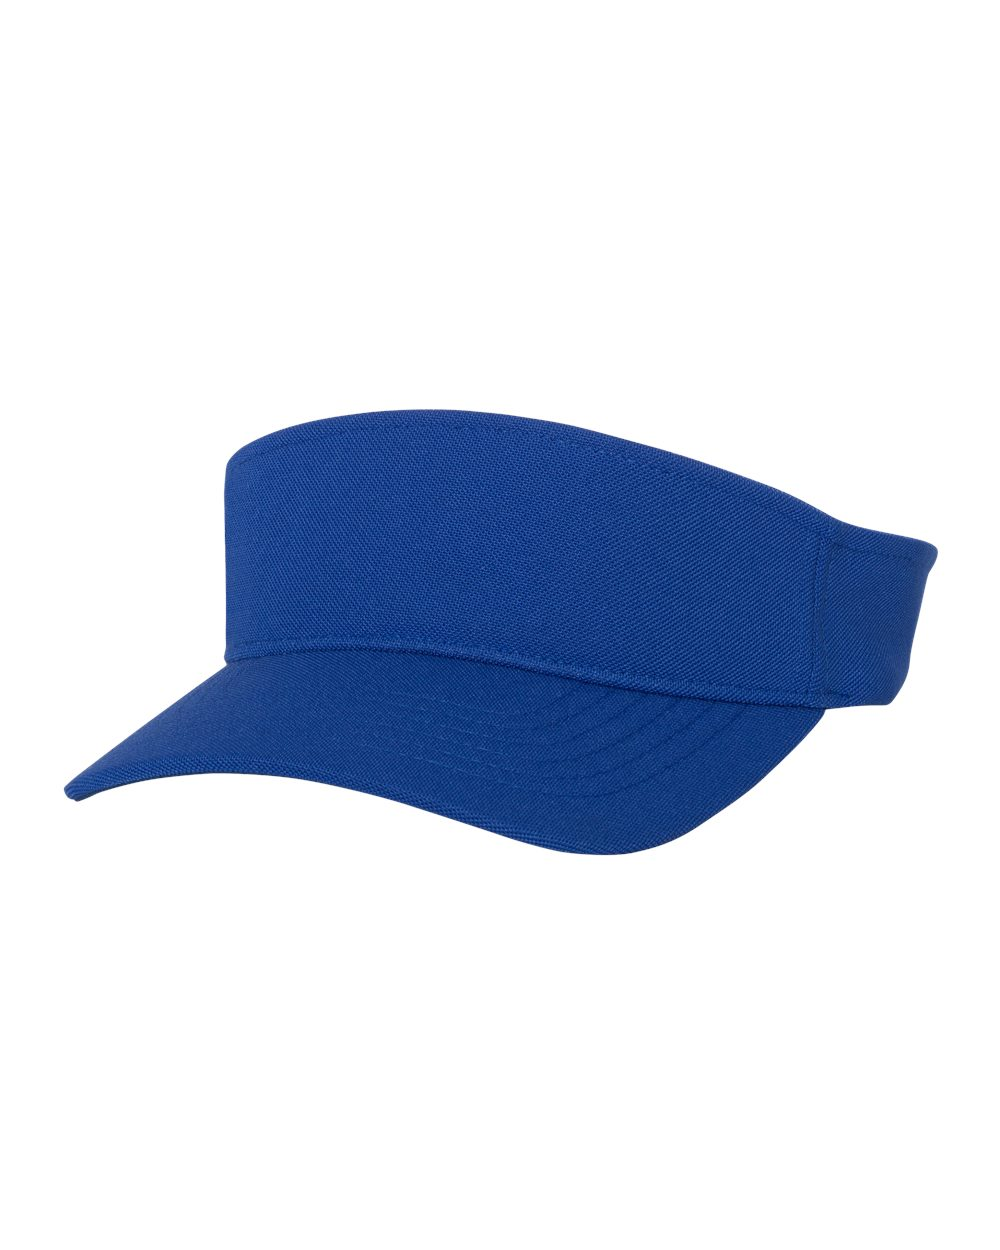 Flexfit 8110 - Comfort Fit Visor